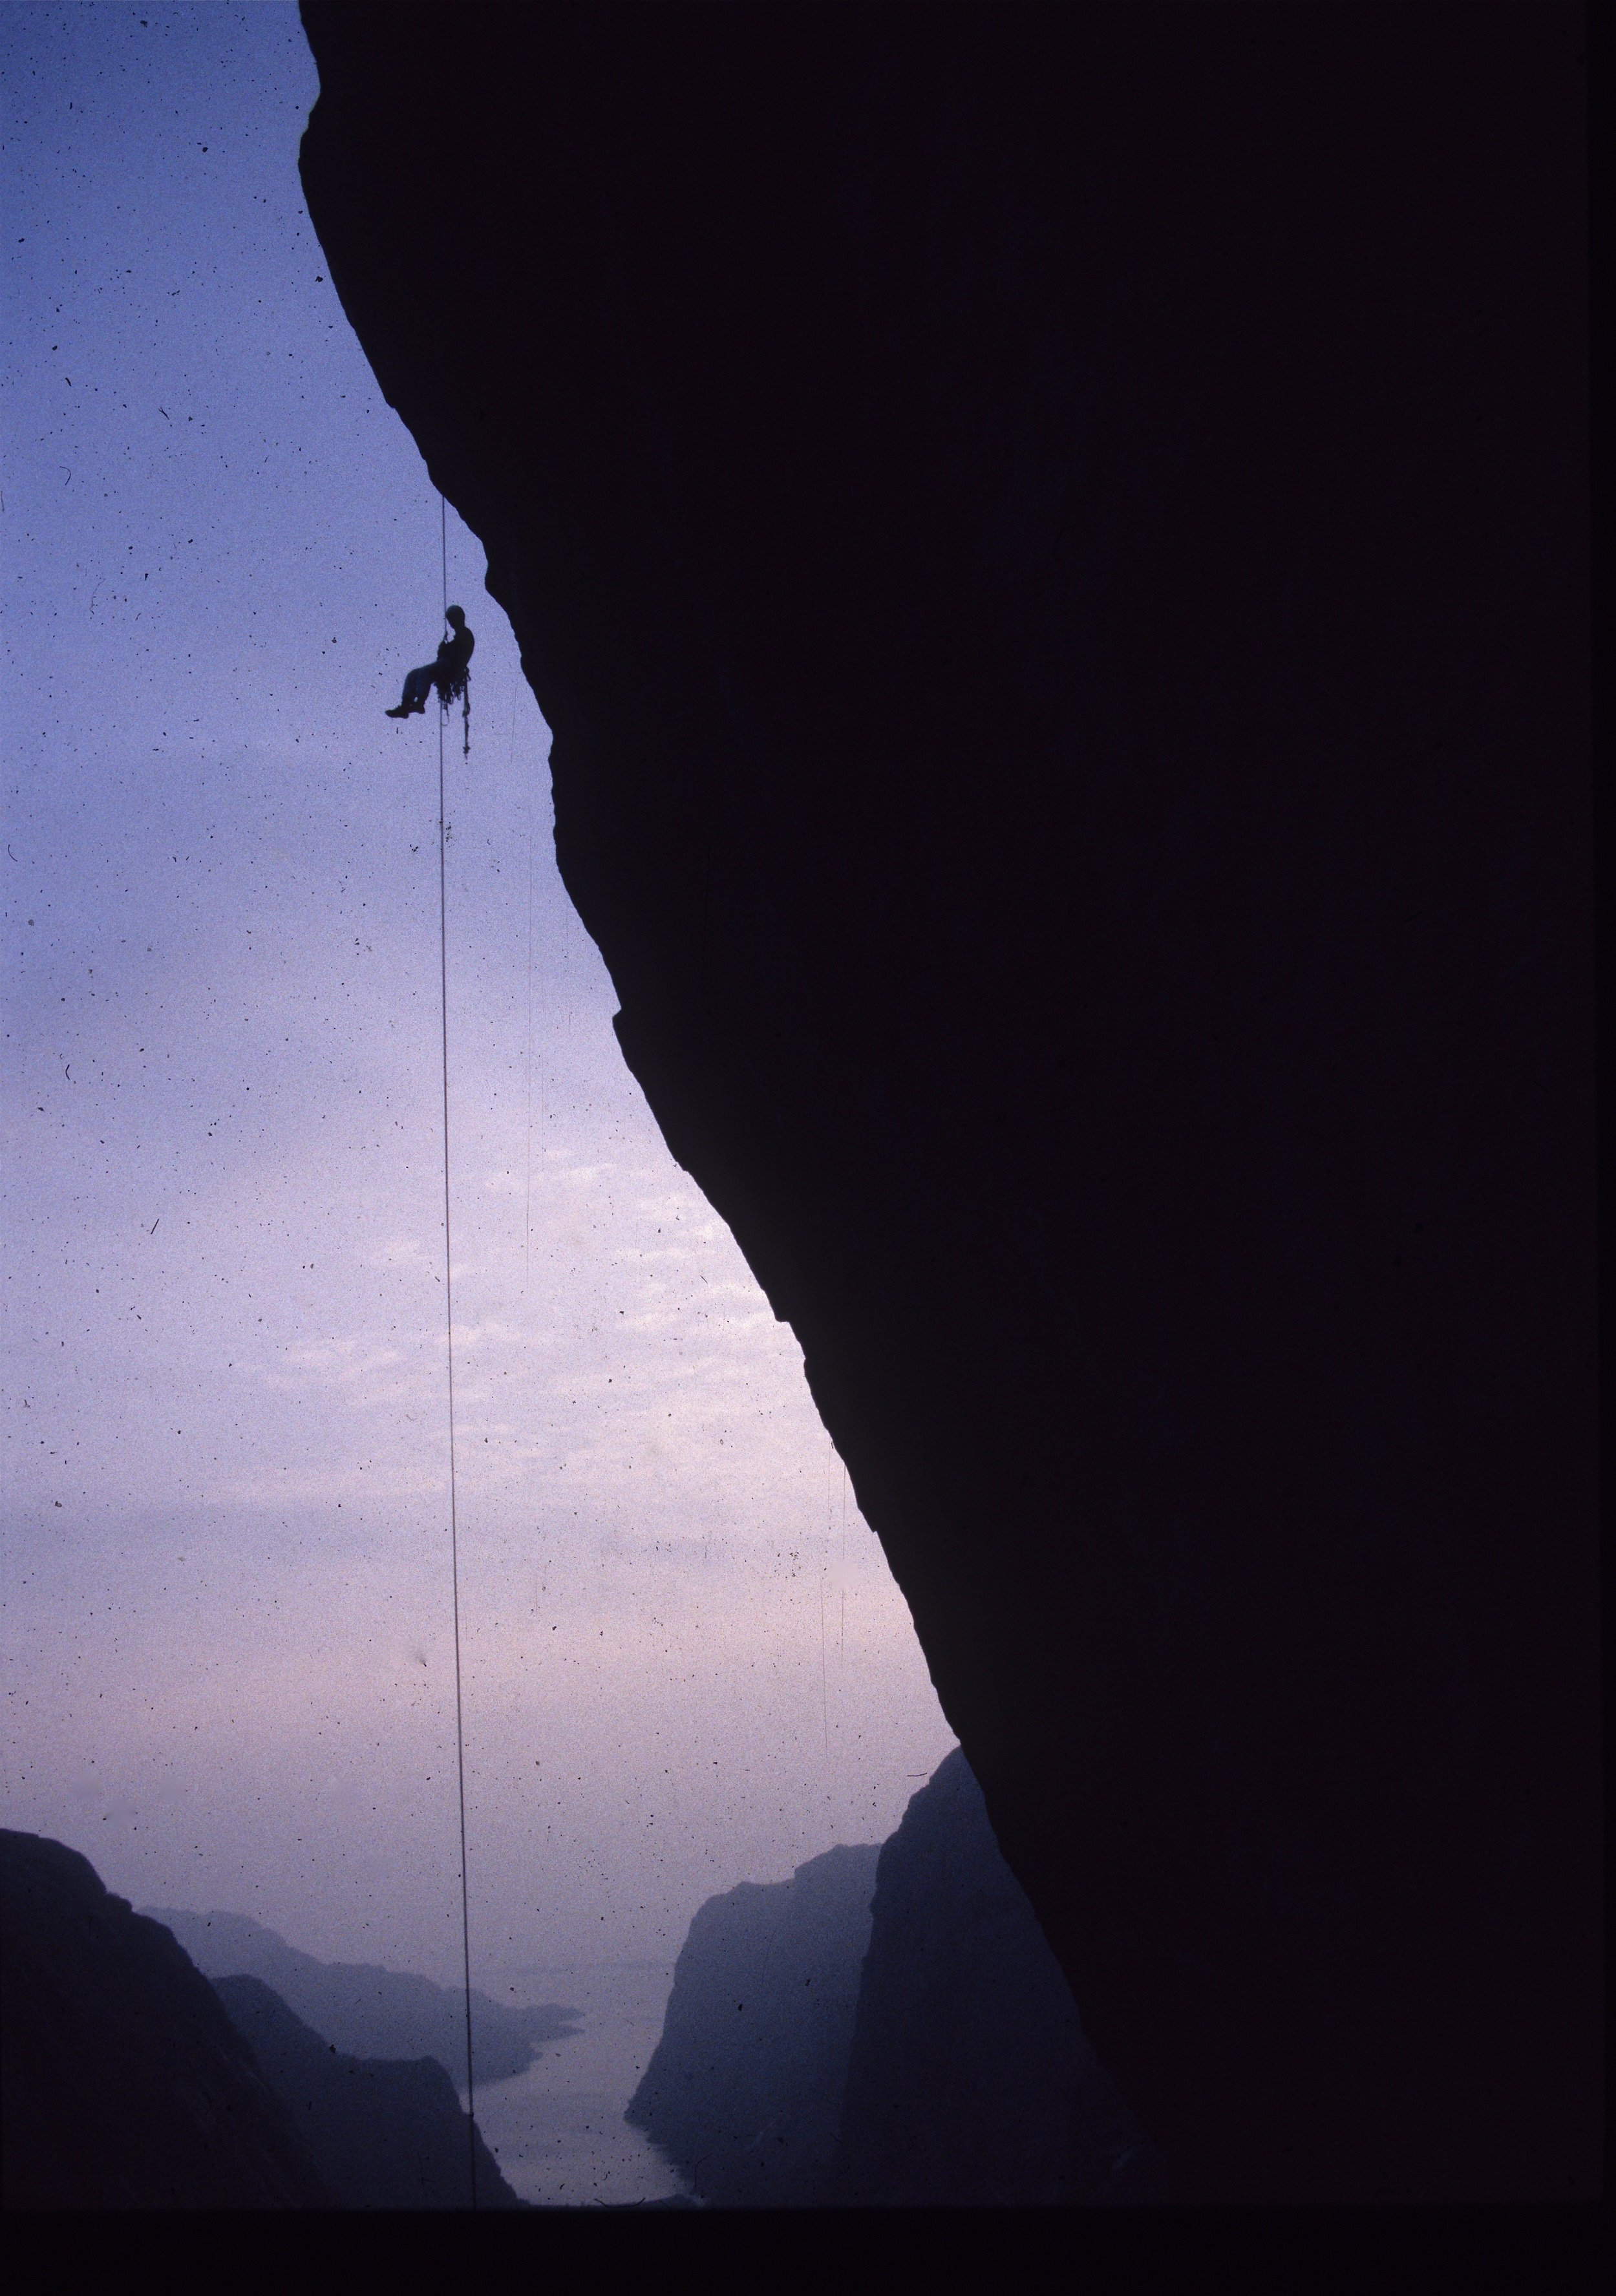 Leo Houlding abseiling from Firefox E7 6b, 6c, 6a, Norway during our ascent in 1998.  Photo: Andy Cave